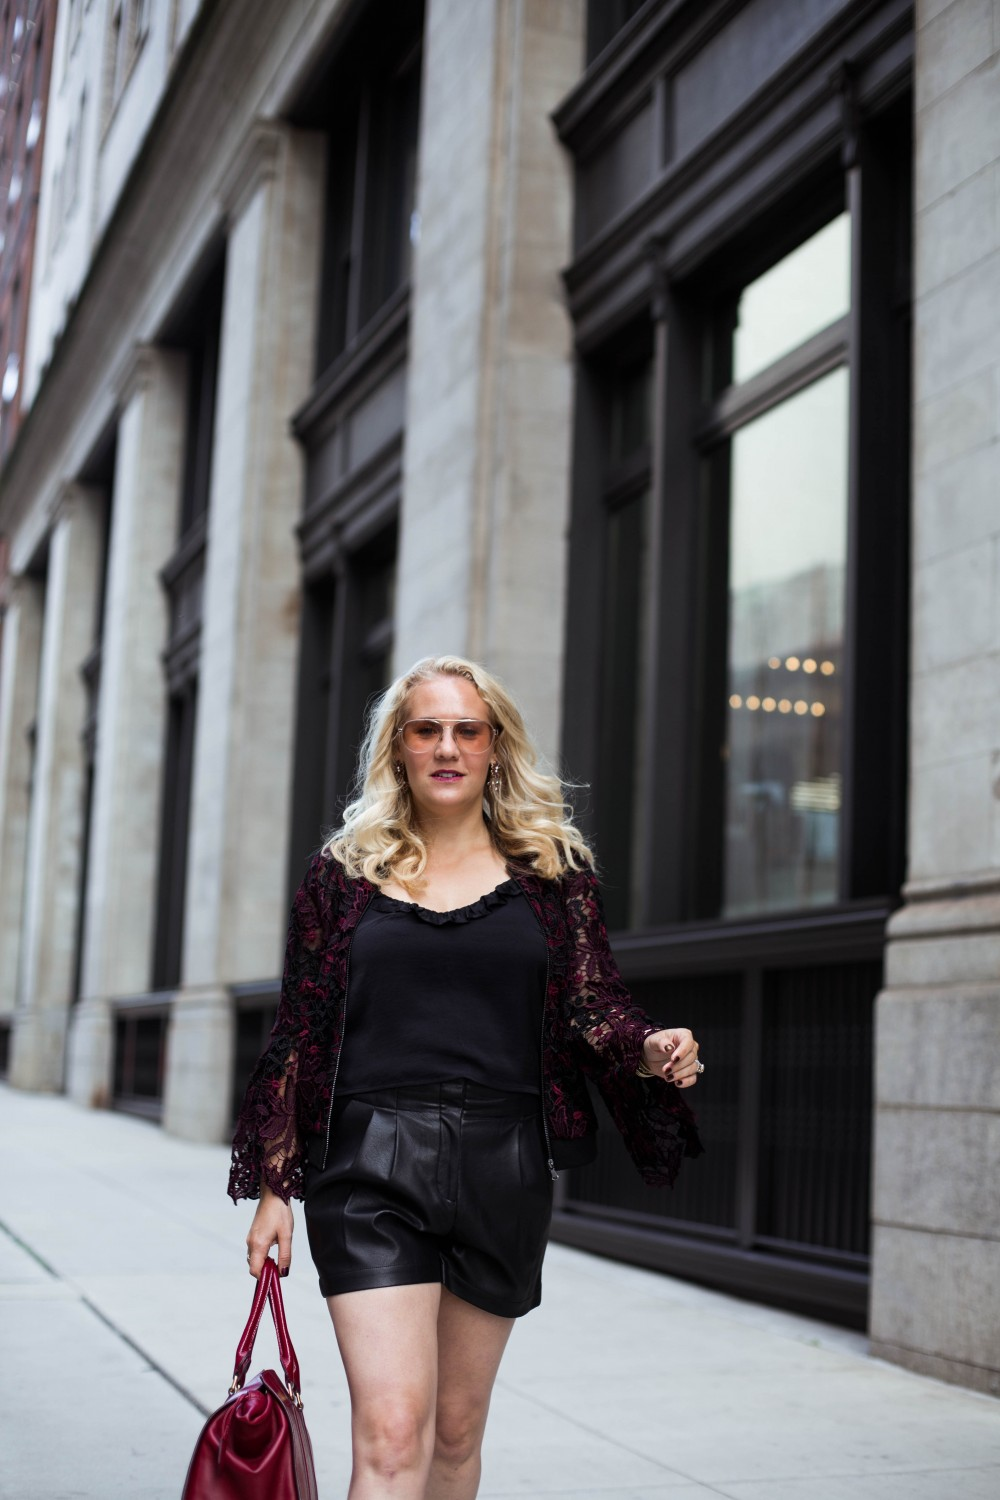 Lace Bomber Jacket-Kobi Halperin for Macy's-NYFW Street Style-NYFW SS18-Outfit Inspiration-Faux Leather Shorts-BCBG-Fall Fashion-Donald Pliner Booties-Geene Boots from Donald J Pliner-Have Need Want 8